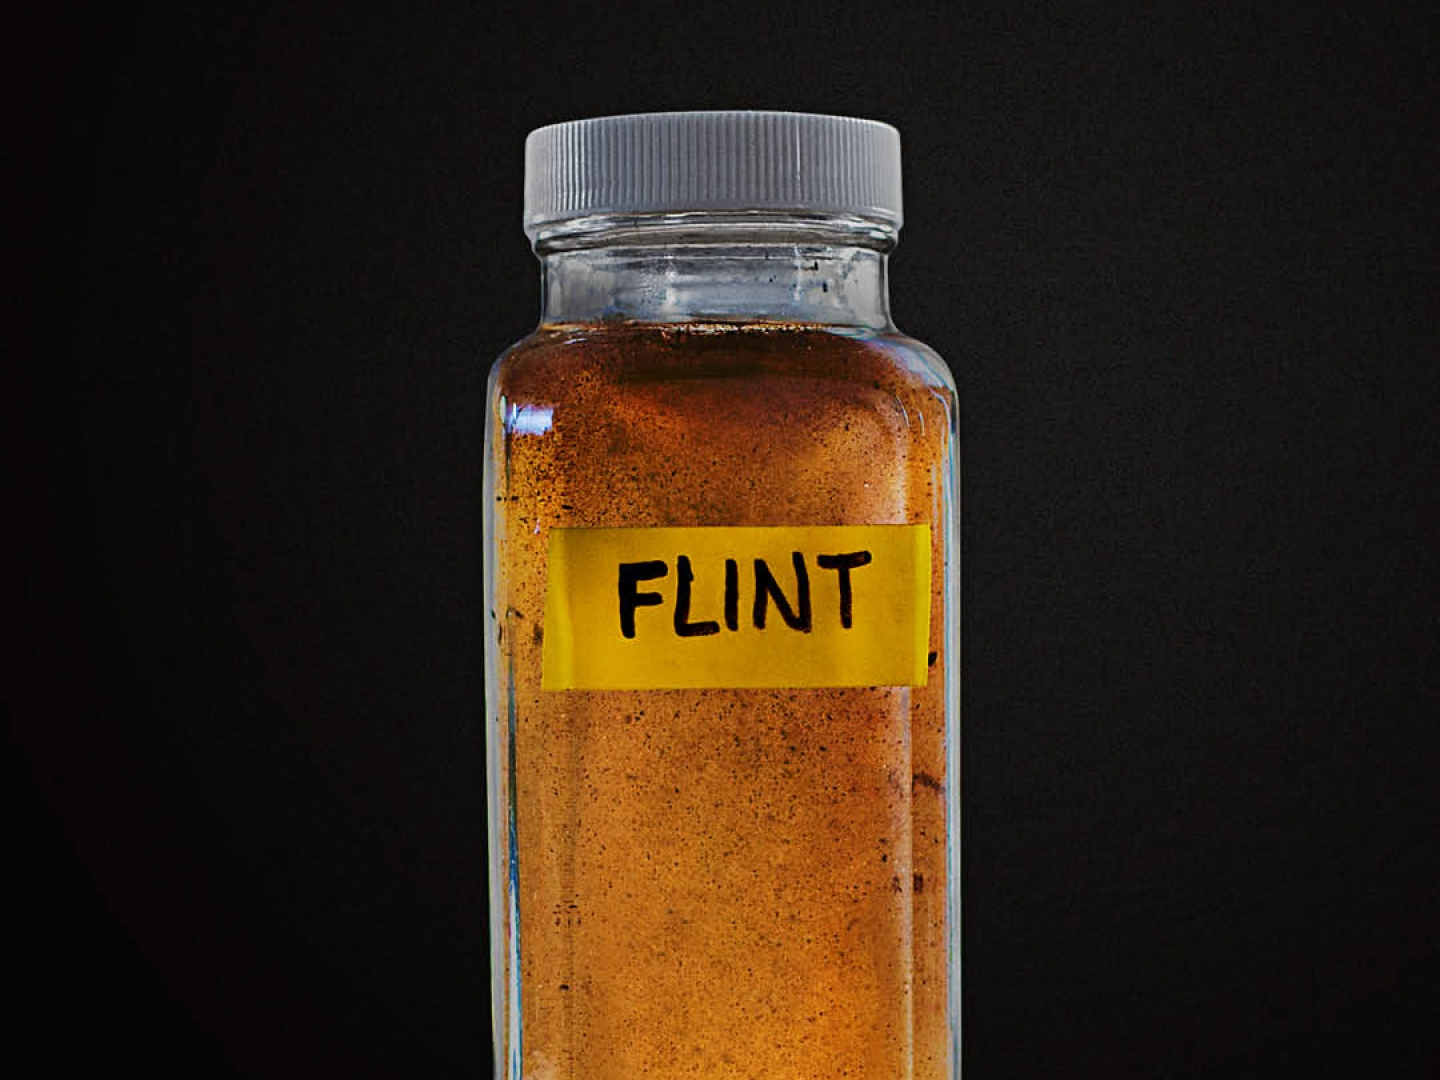 Flint (Household Water Tease) Thumbnail